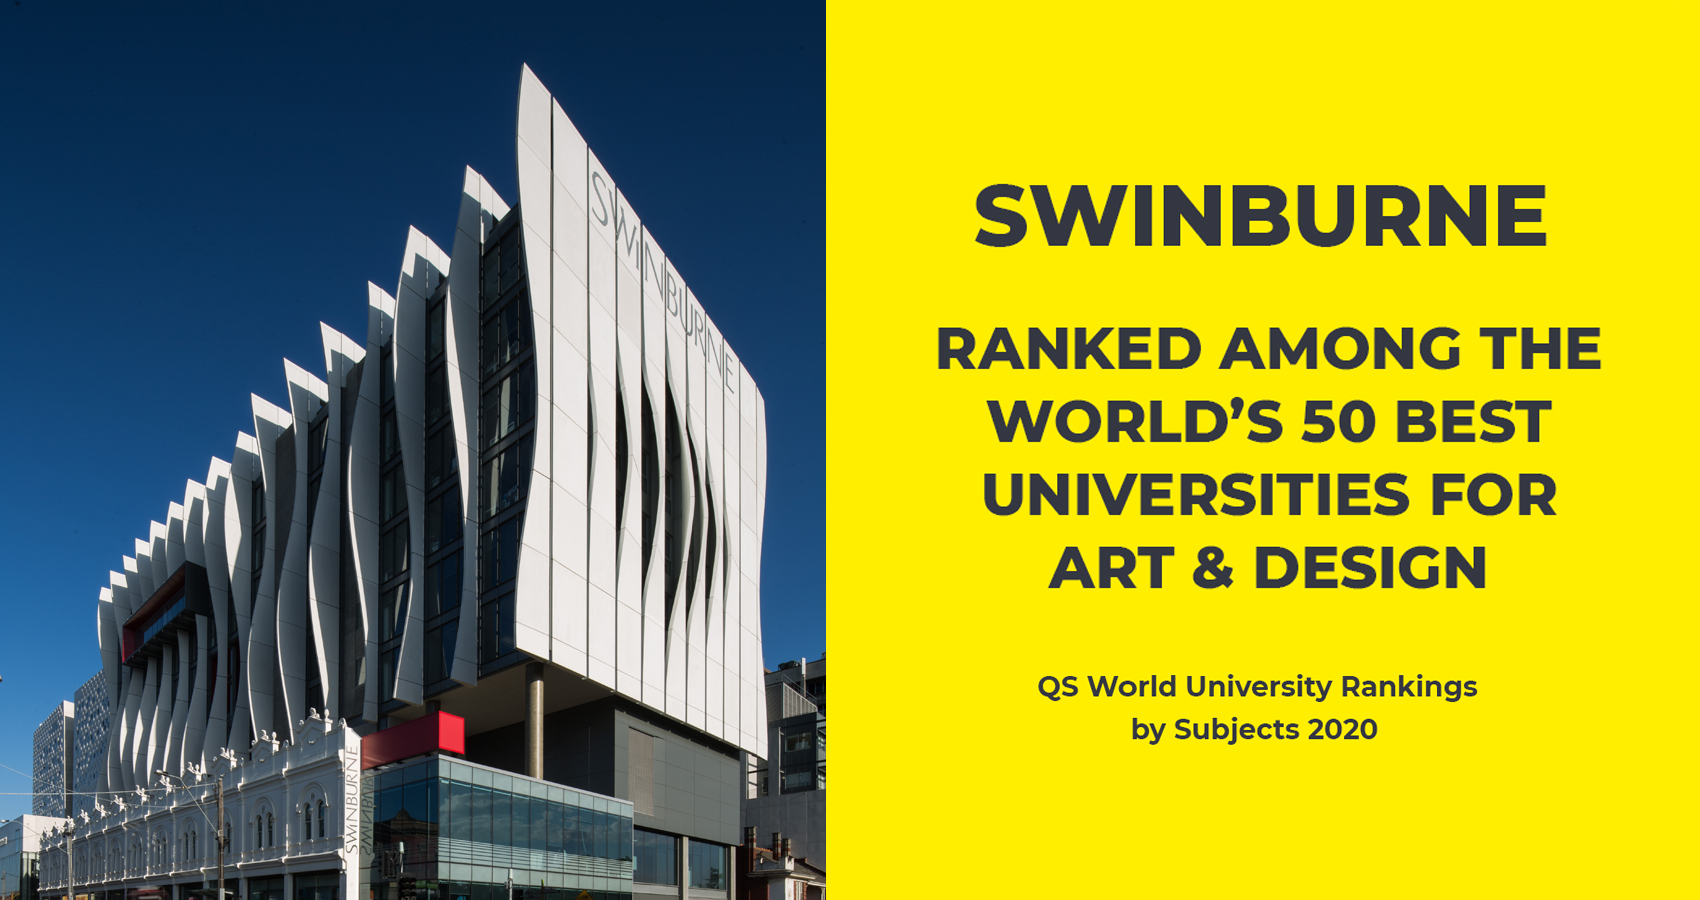 Tile image of Swinburne's performance in the QS World University Rankings by Subject 2020